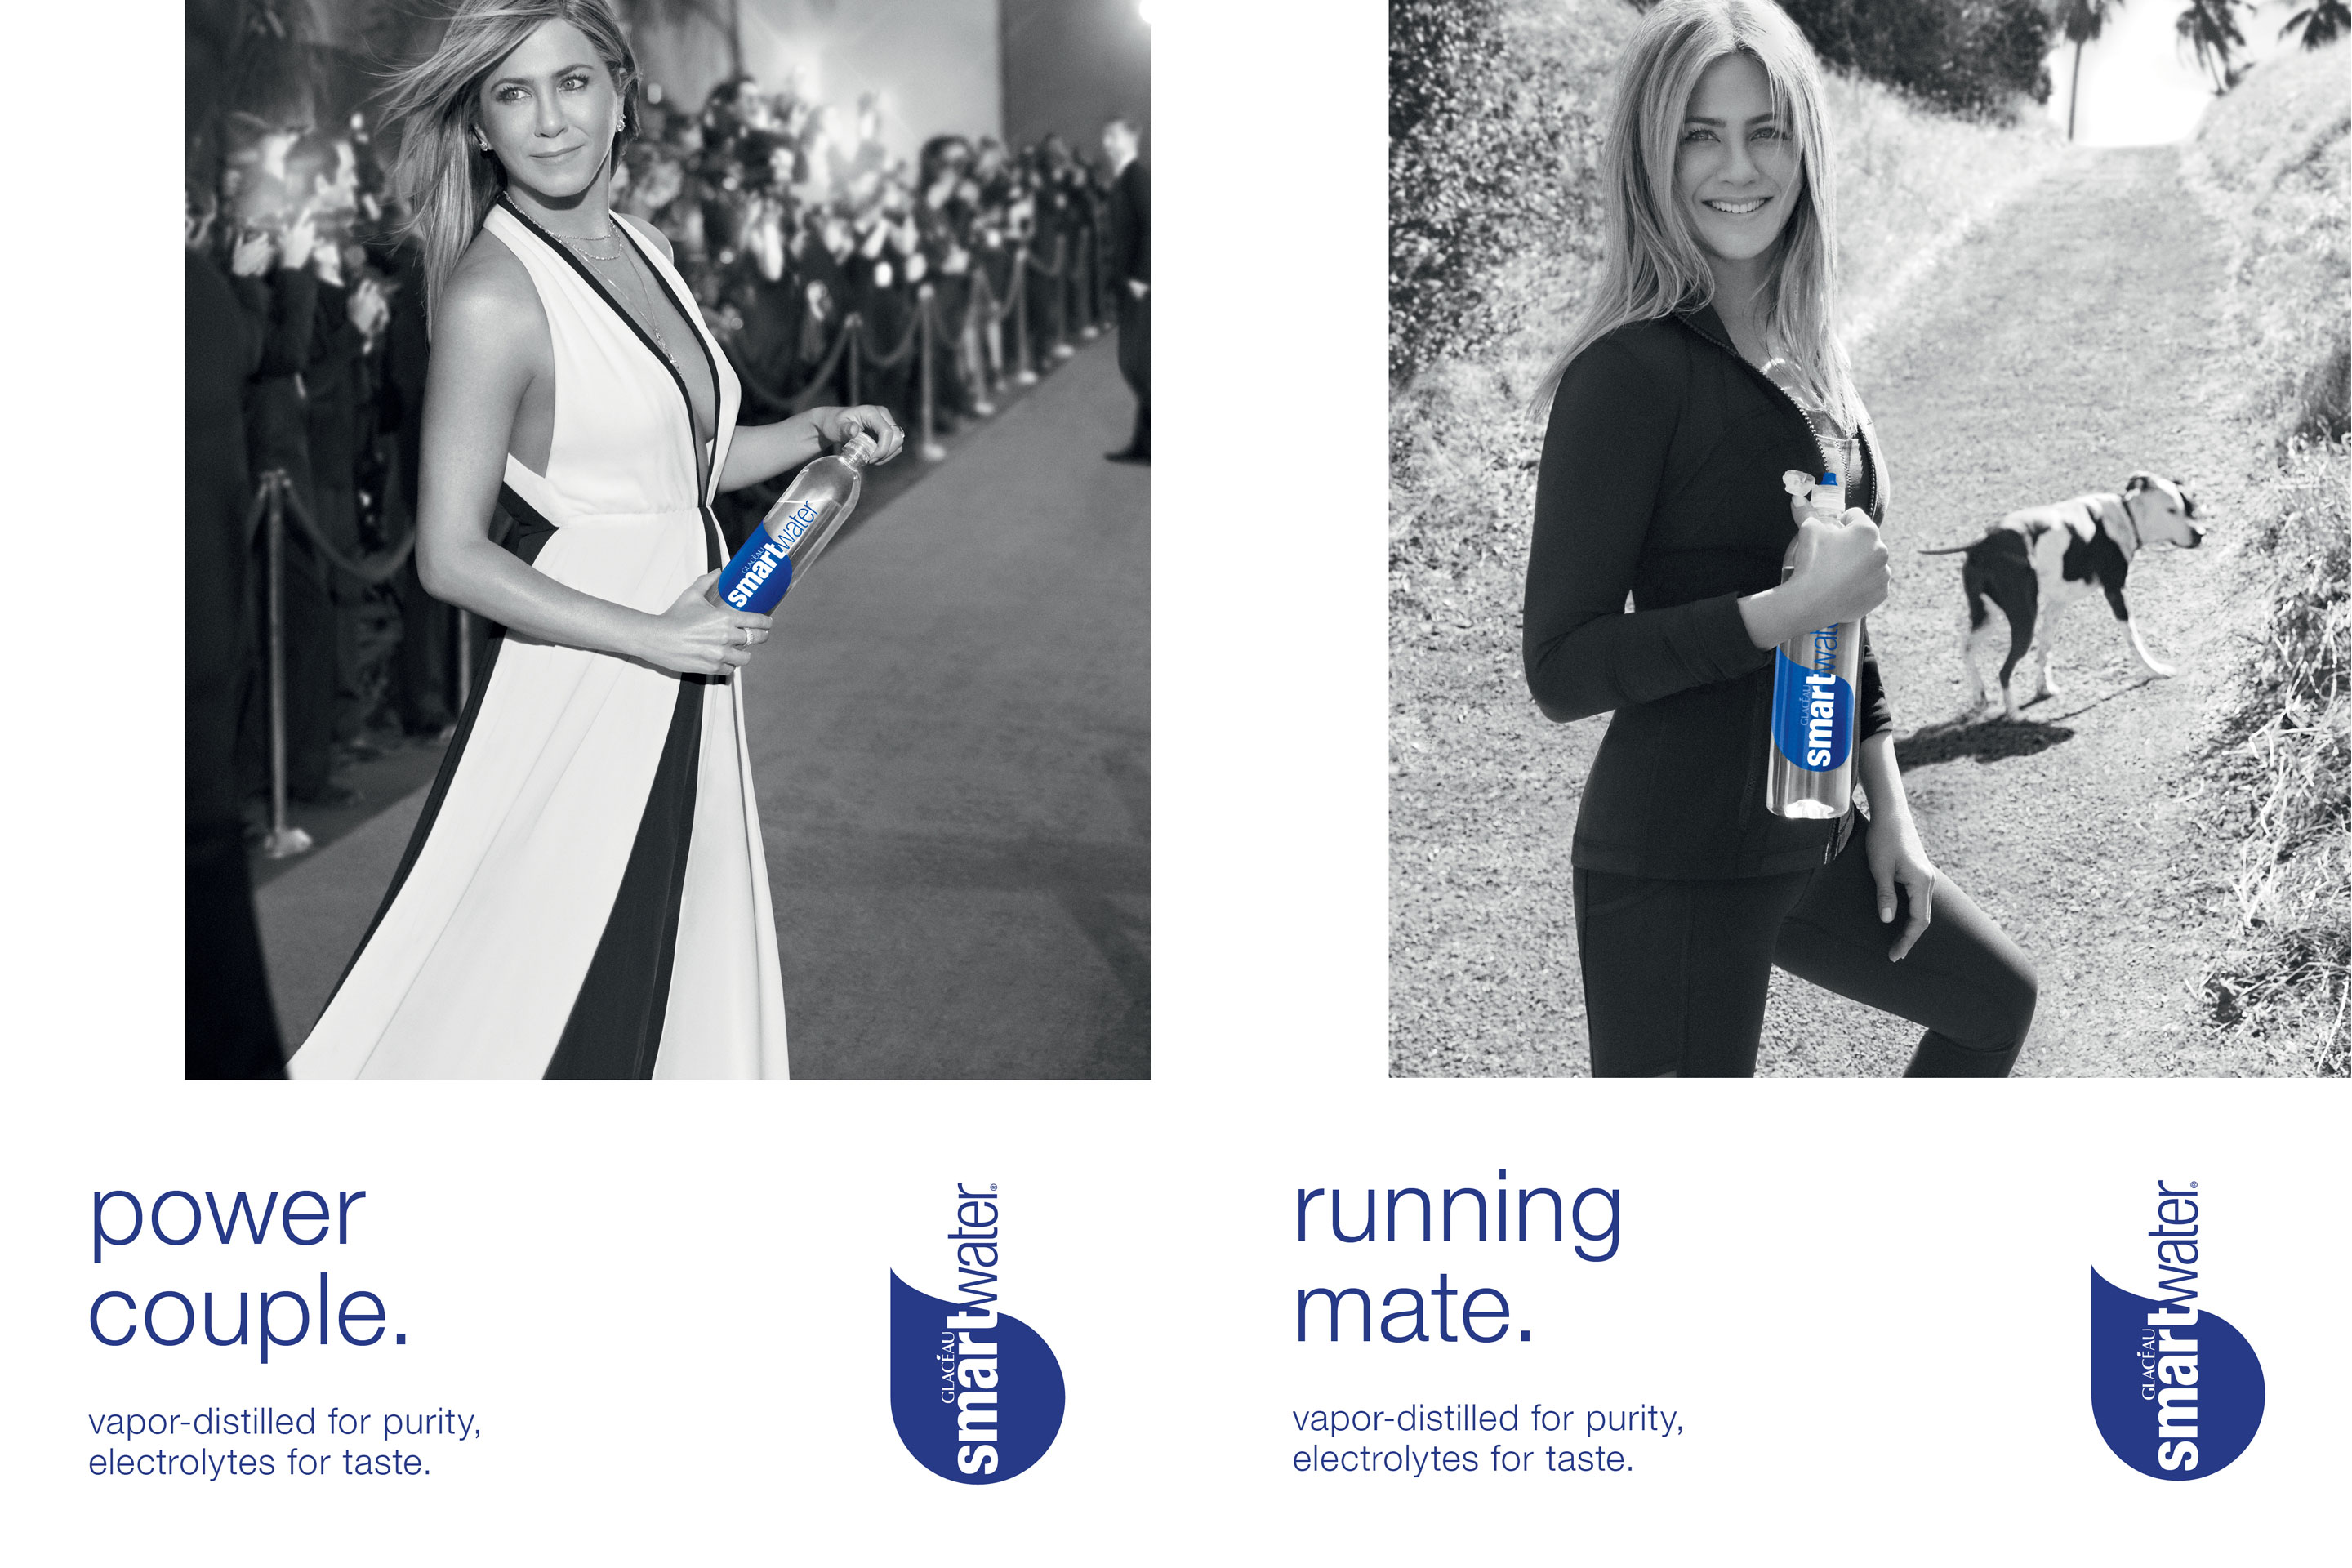 Actress Jennifer Aniston will appear in new ads for Coca-Cola's popular Smartwater premium bottled water brand.